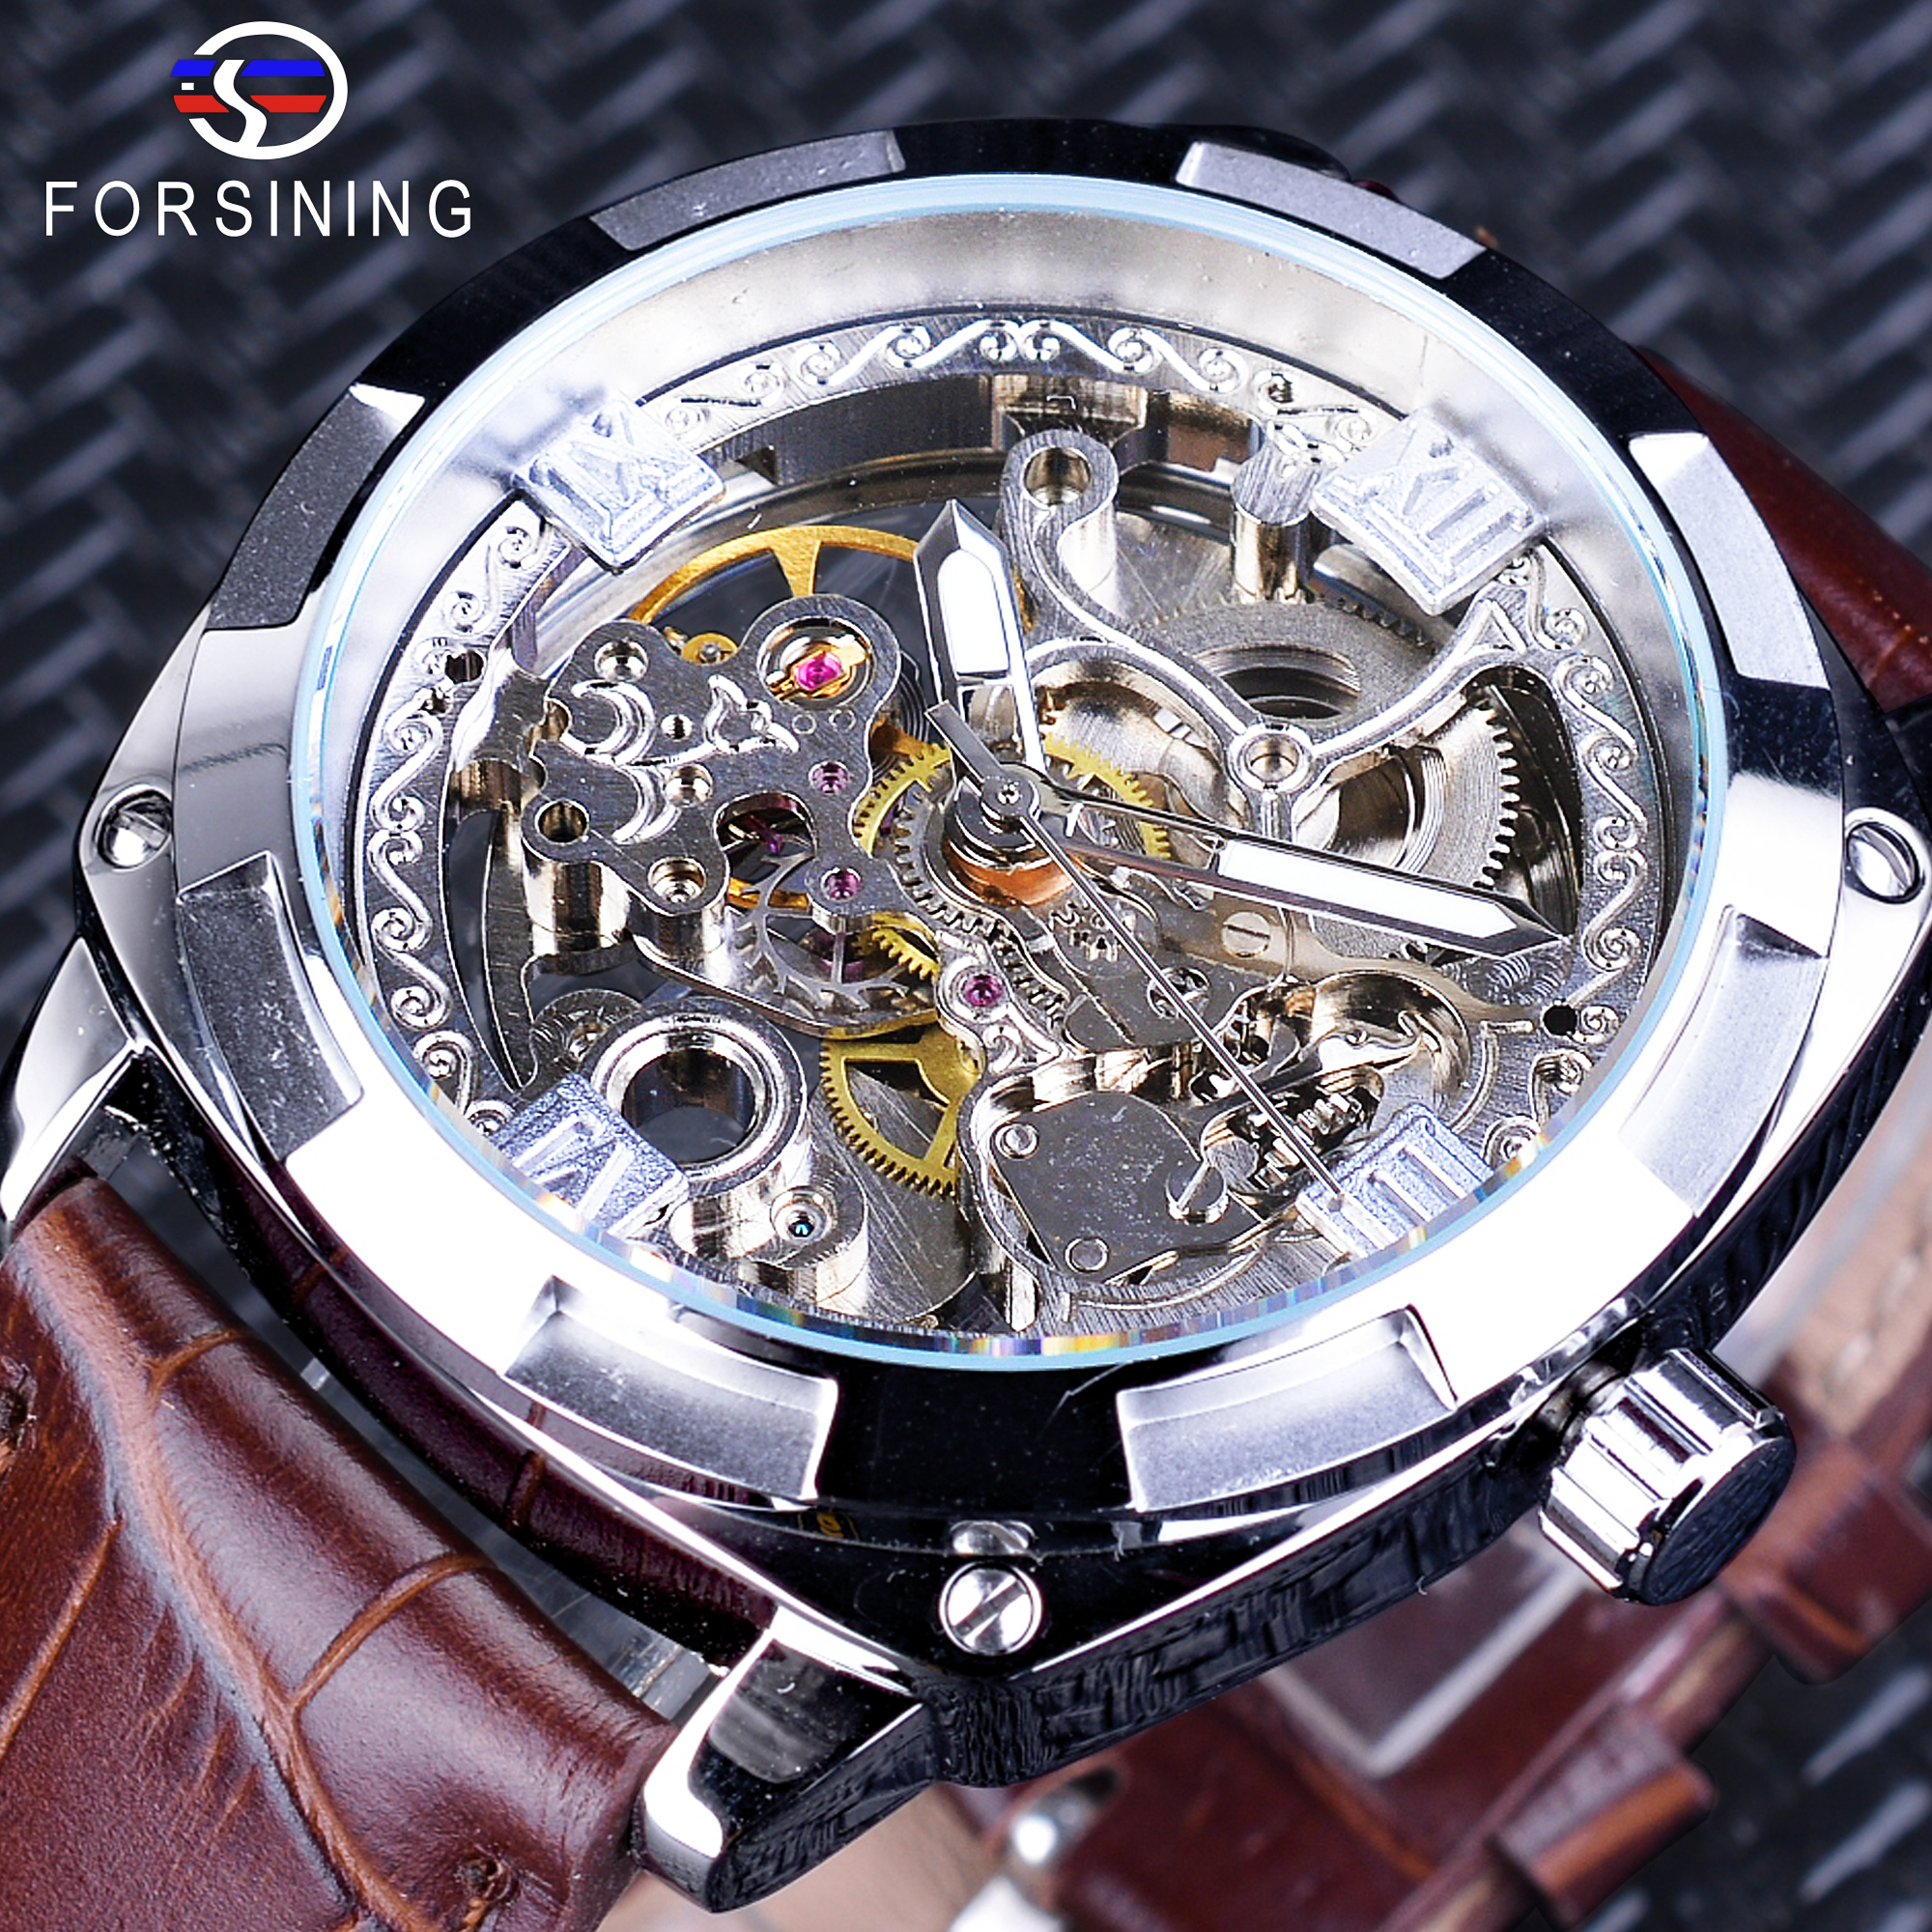 Forsining New Silver Skeleton Clock Brown Genuine Leather Water Resistant Automatic Self-winding Watches for Men relojes hombreForsining New Silver Skeleton Clock Brown Genuine Leather Water Resistant Automatic Self-winding Watches for Men relojes hombre